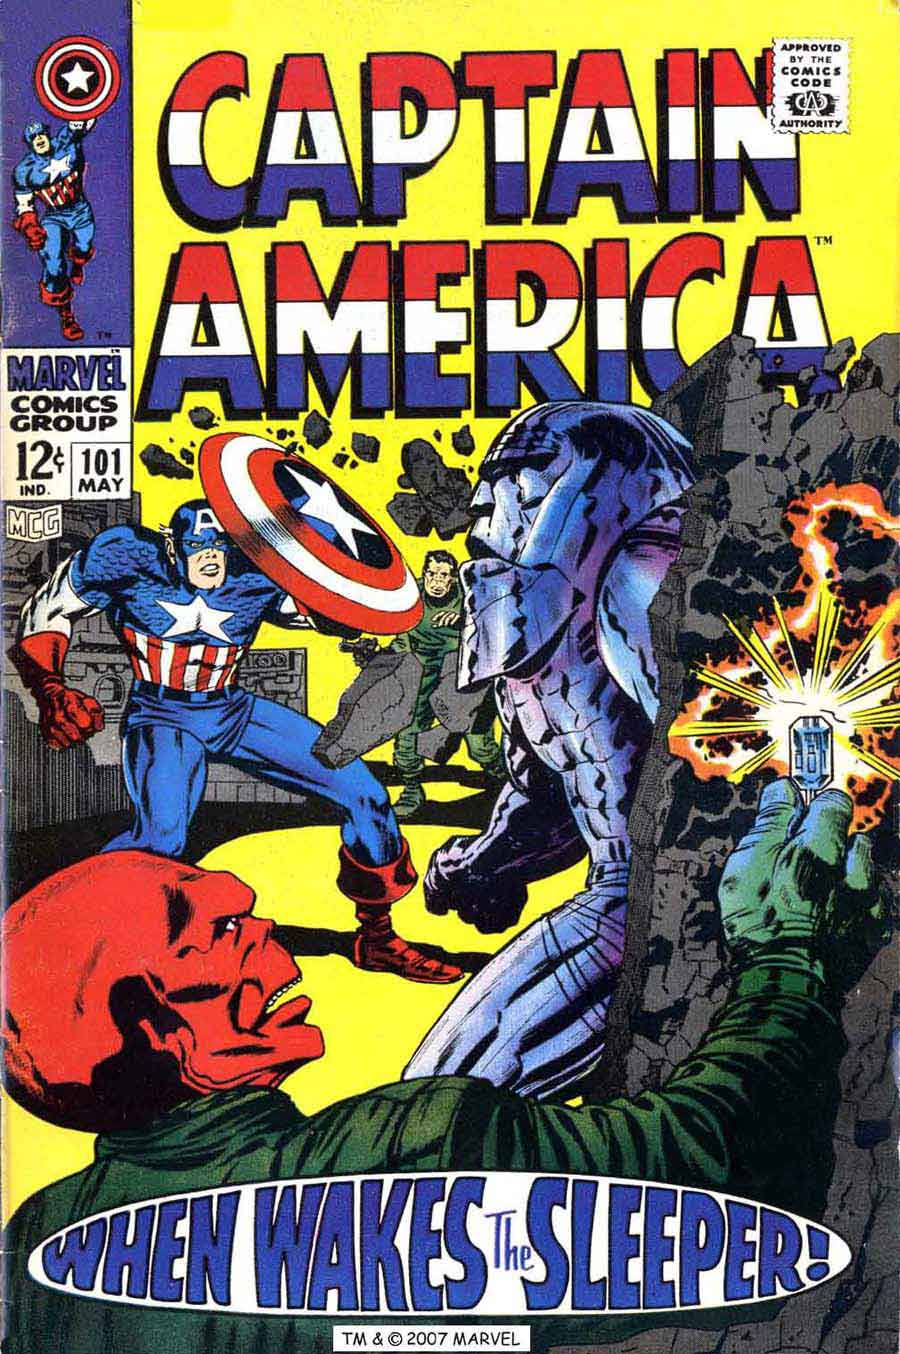 Captain America v1 #101 marvel comic book cover art by Jack Kirby